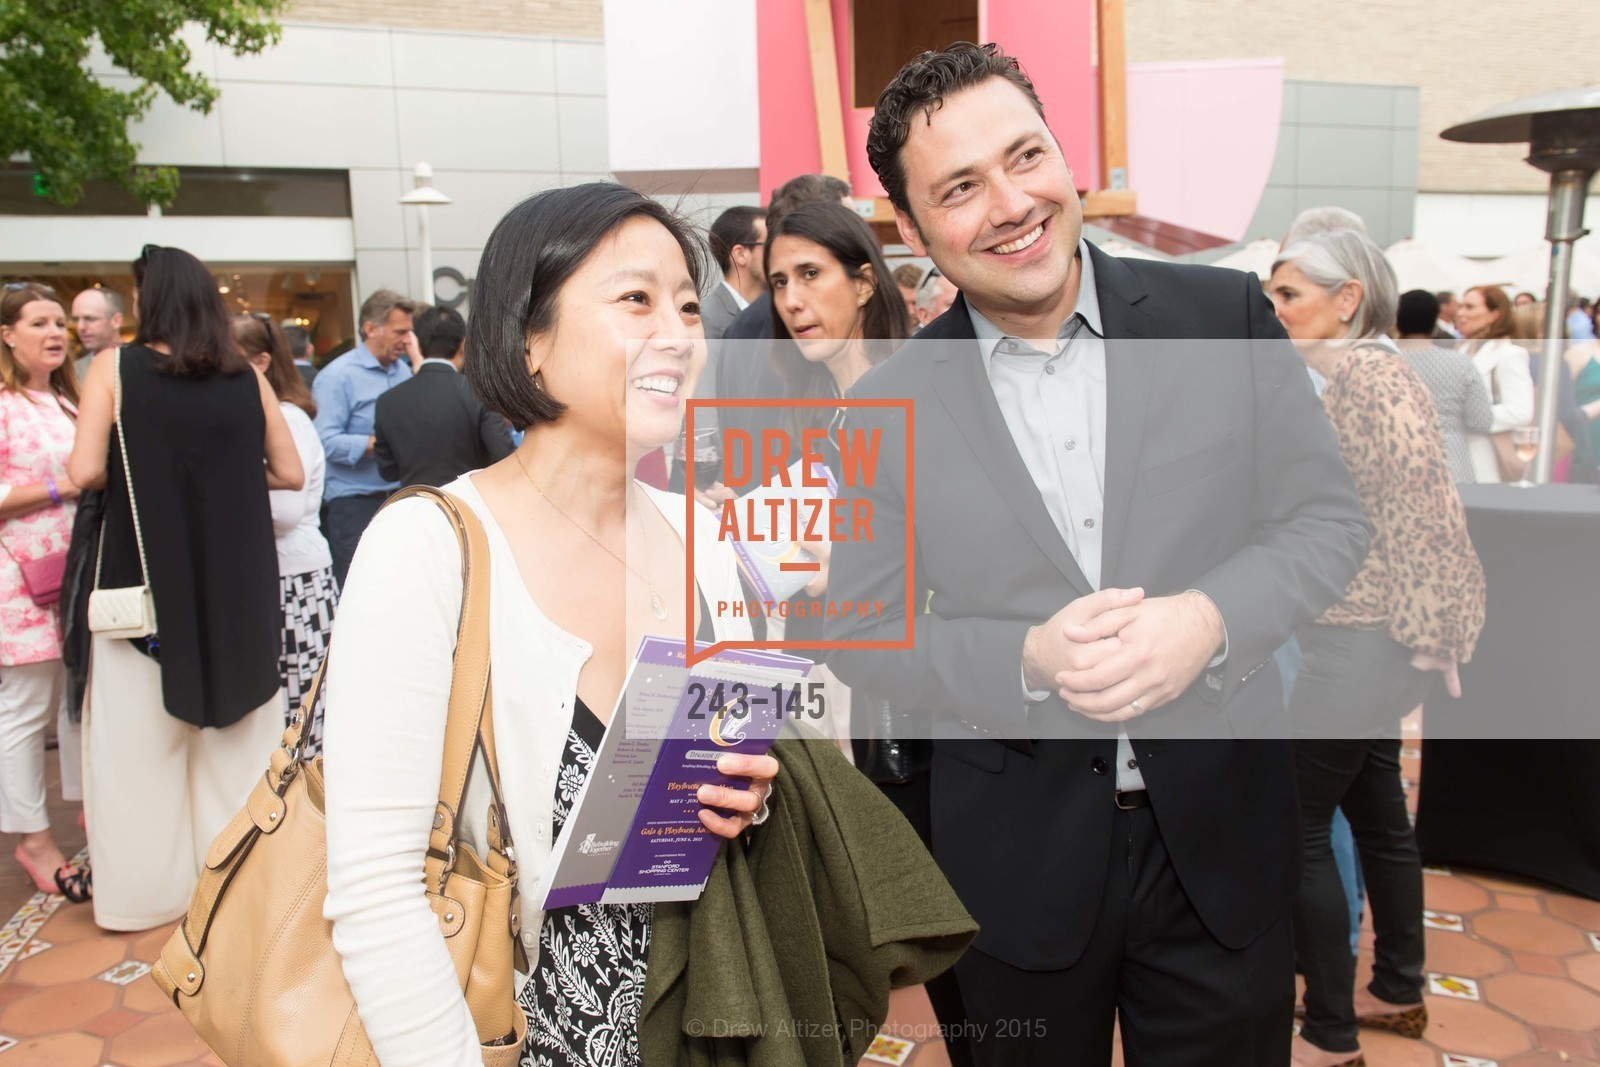 Sharon Wong, David Cattivera, DREAMS HAPPEN: Playhouse Auction and Gala, Stanford Shopping Center, June 5th, 2015,Drew Altizer, Drew Altizer Photography, full-service agency, private events, San Francisco photographer, photographer california